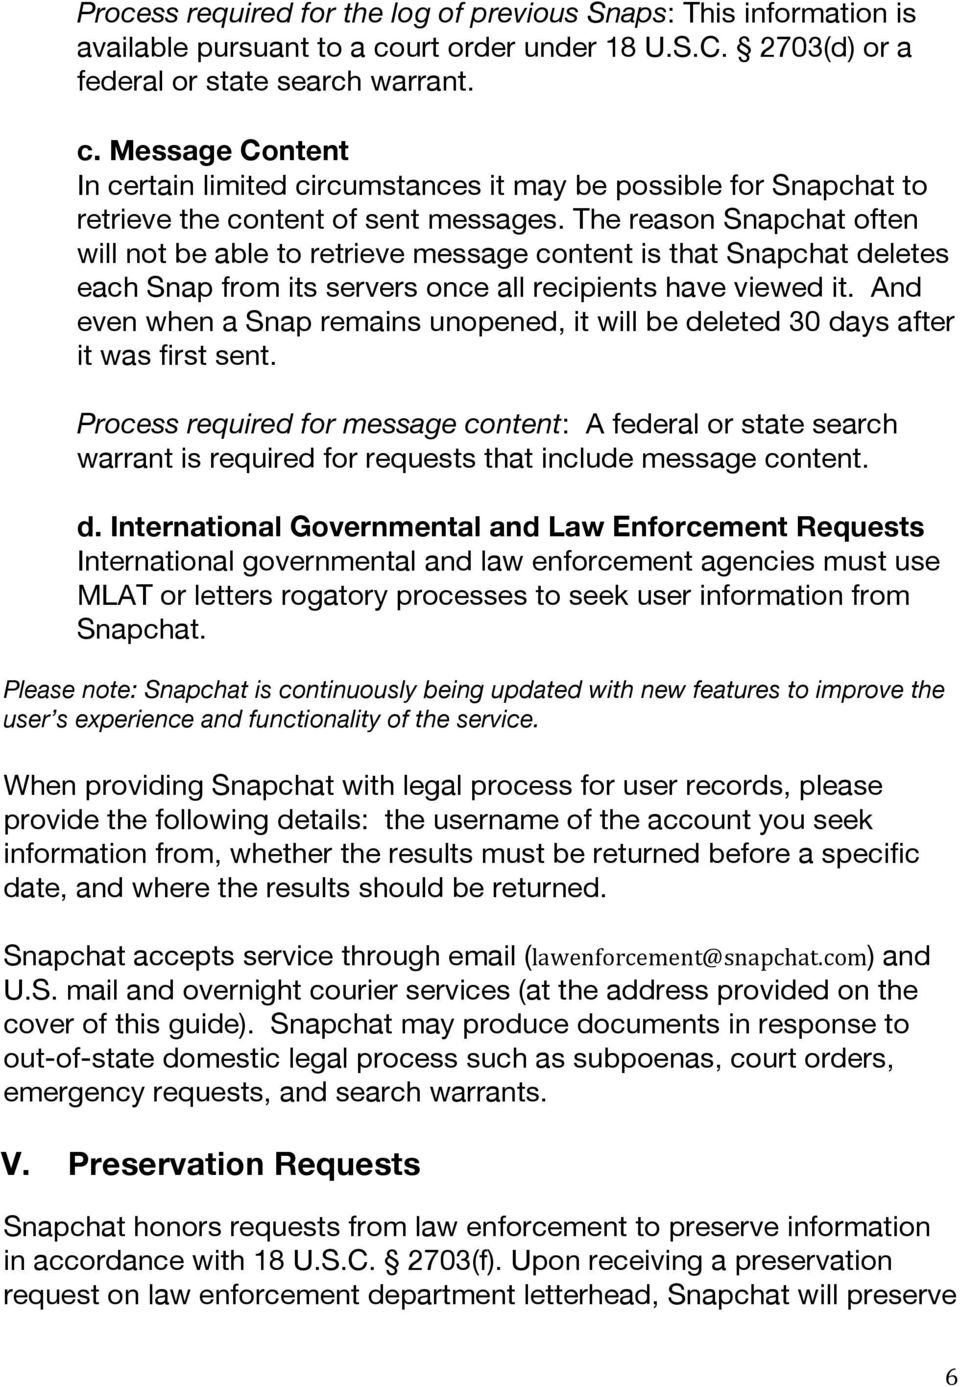 The reason Snapchat often will not be able to retrieve message content is that Snapchat deletes each Snap from its servers once all recipients have viewed it.